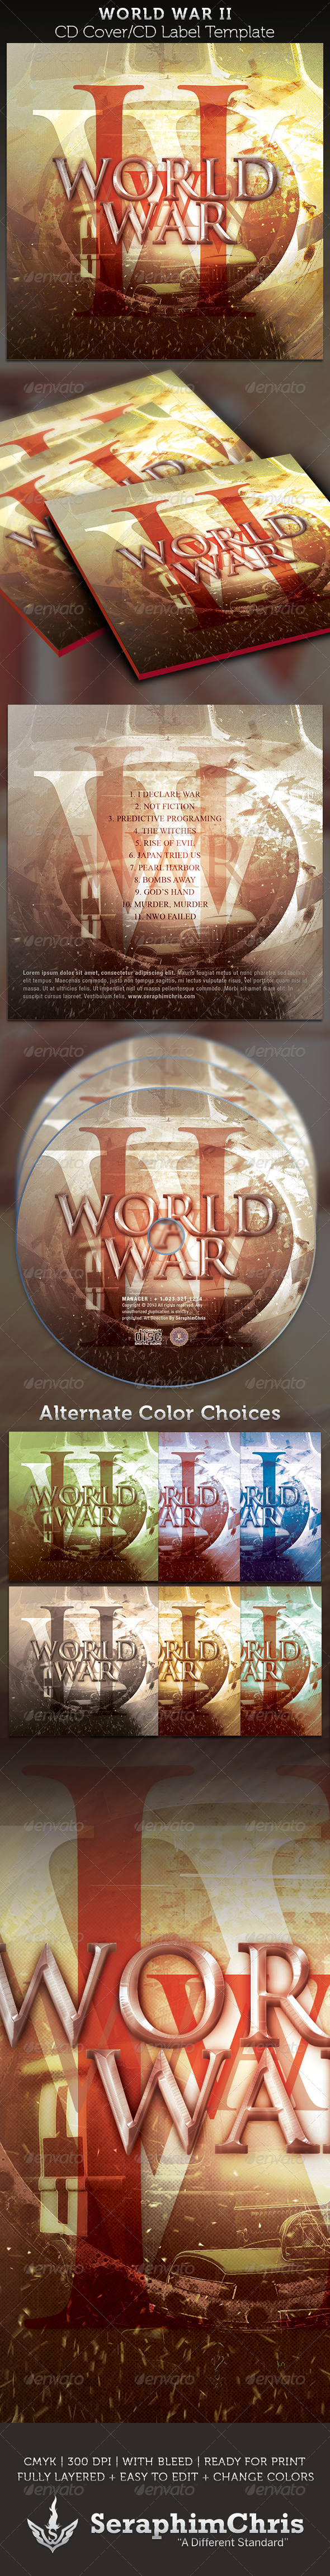 World War II: CD Cover Artwork Template - CD & DVD artwork Print Templates